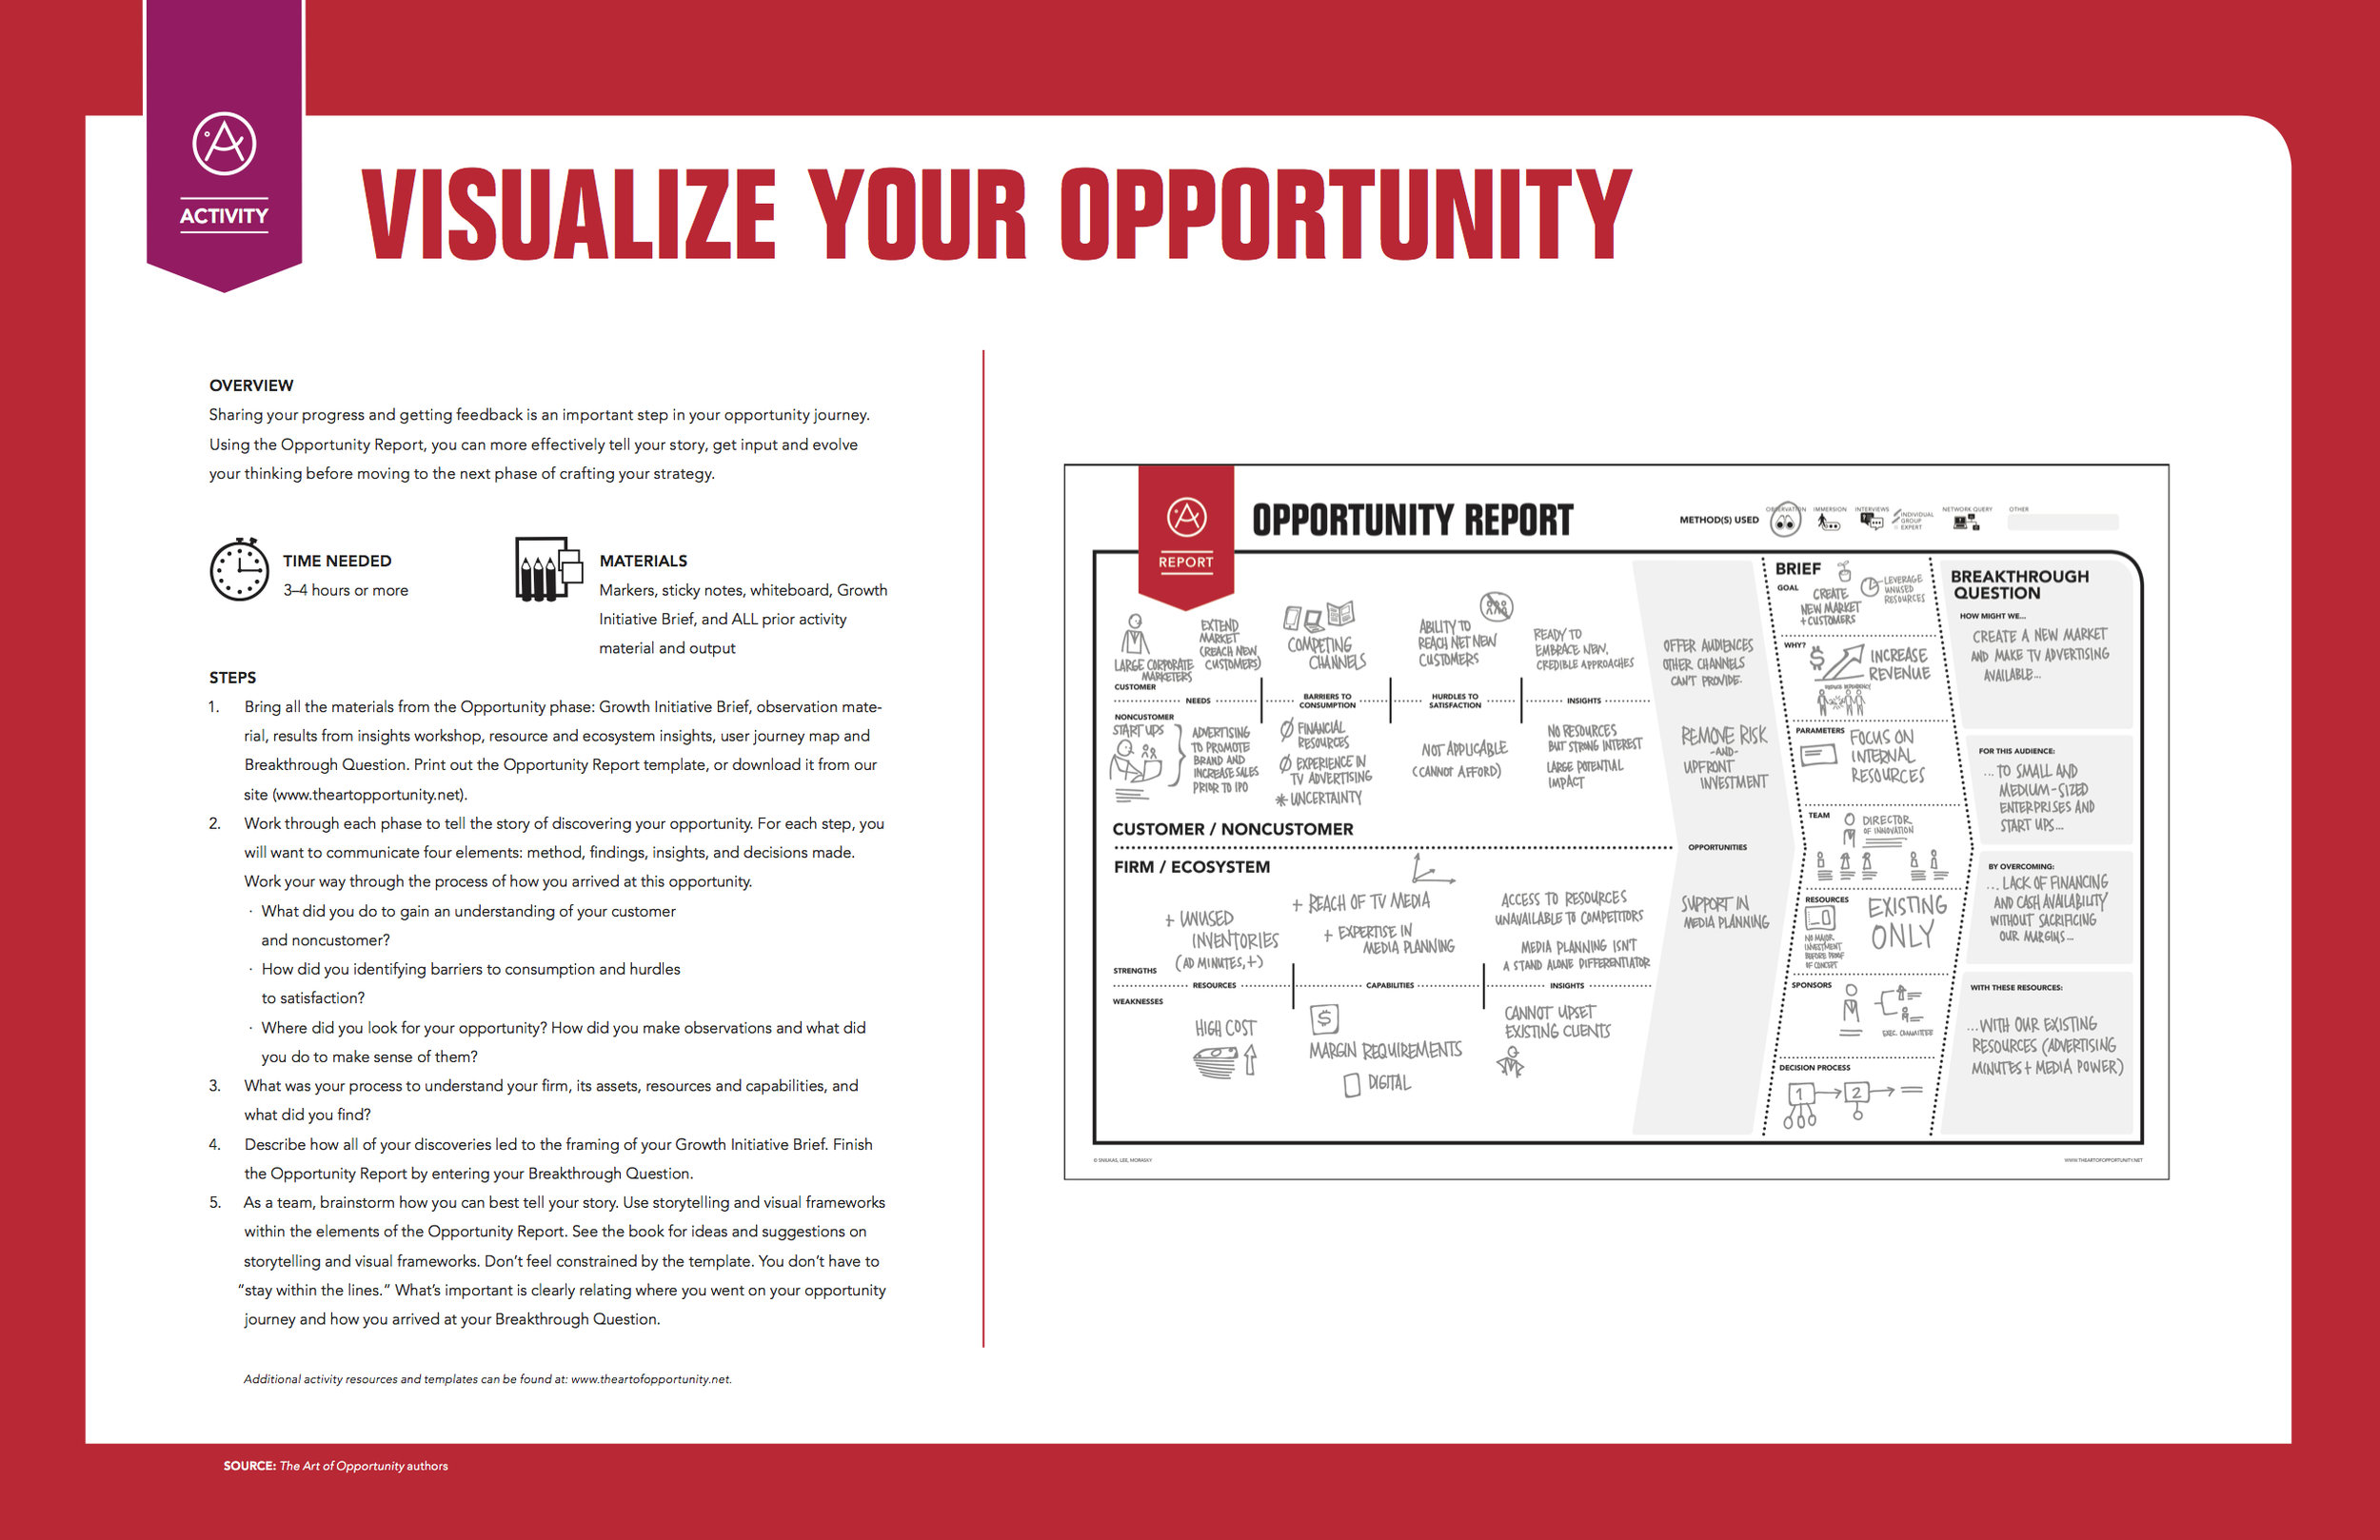 Activity: Visualize Your Opportunity